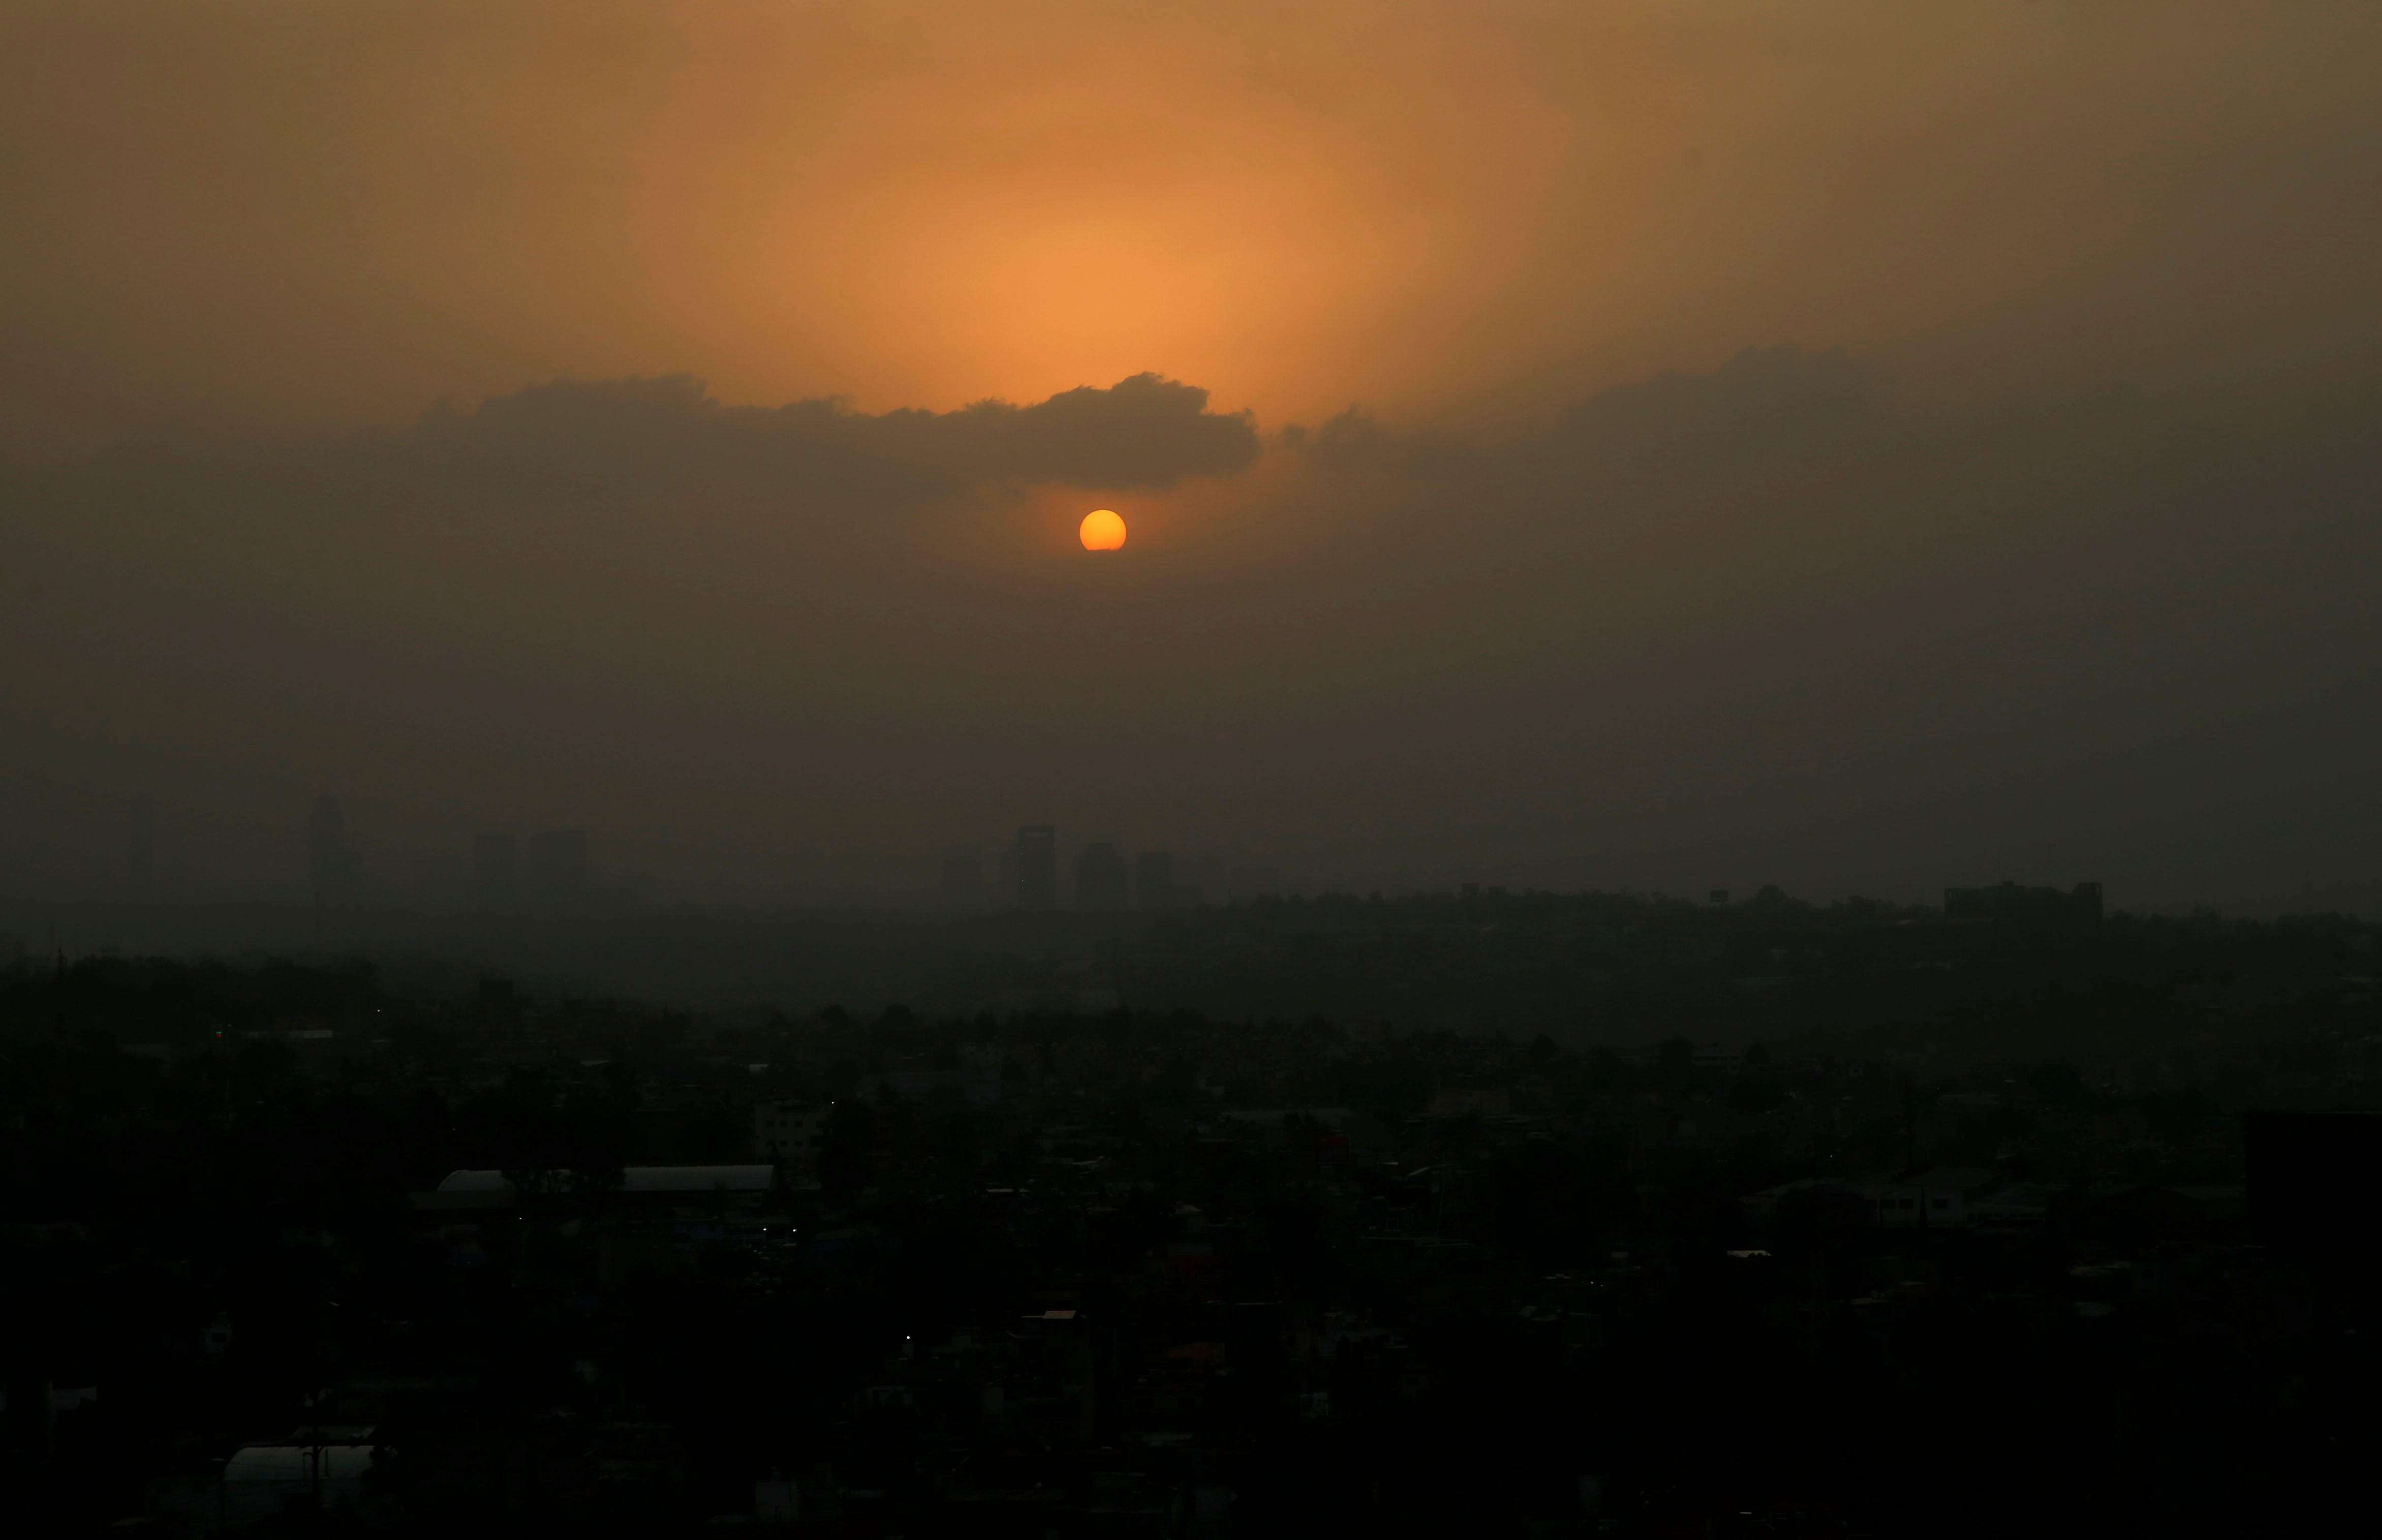 Mexico City air pollution spikes to 6 times acceptable limit 1